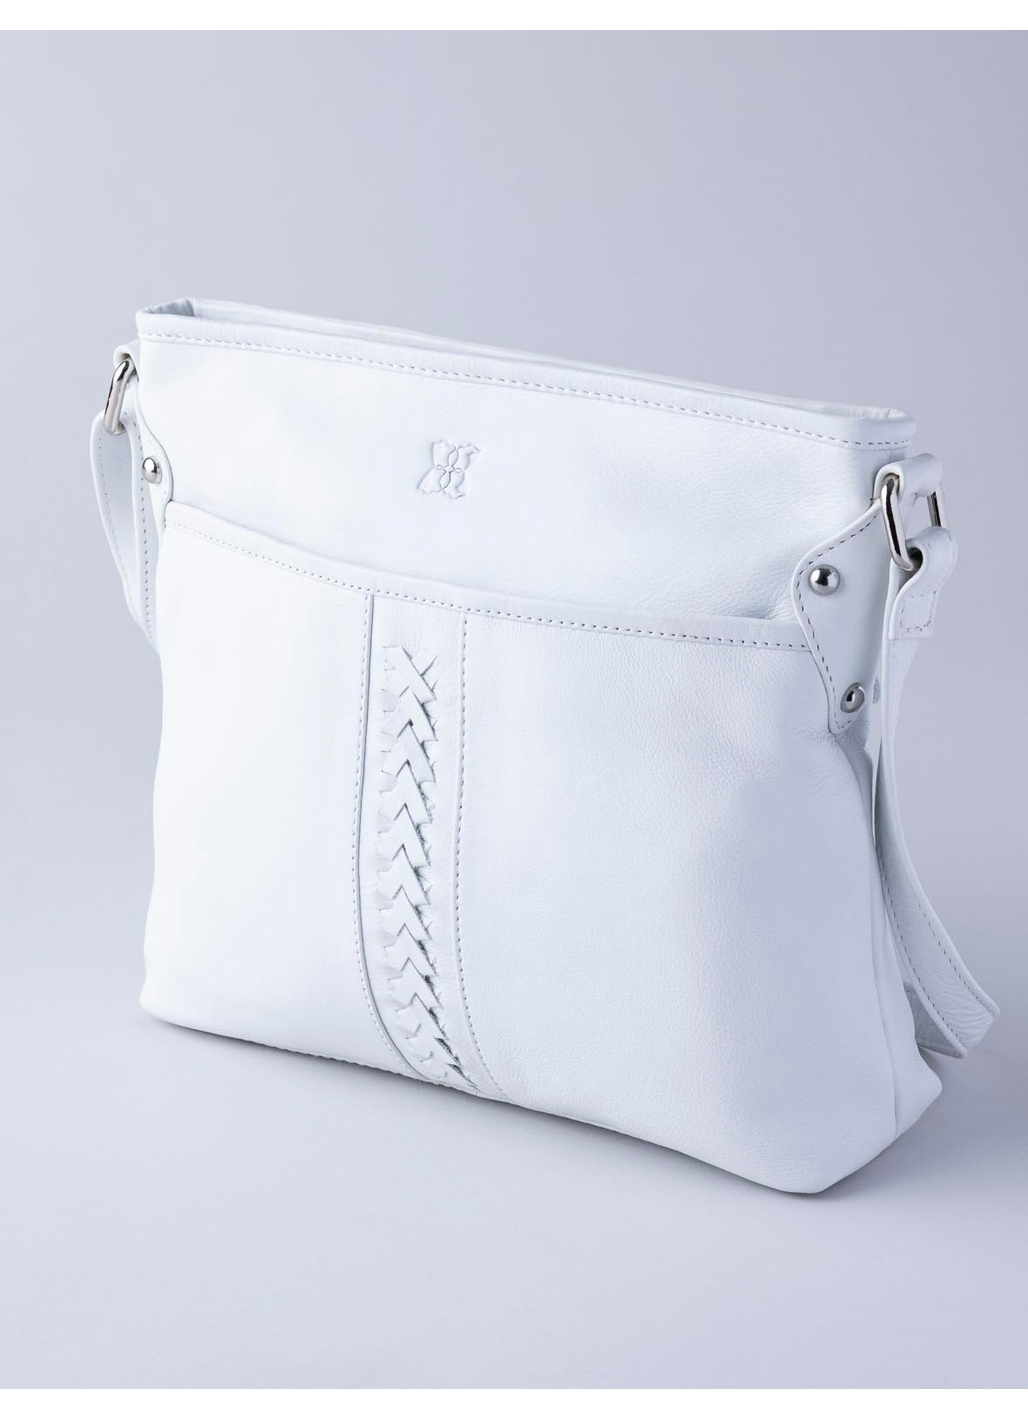 Farlam Plaited Leather Cross Body Bag in White